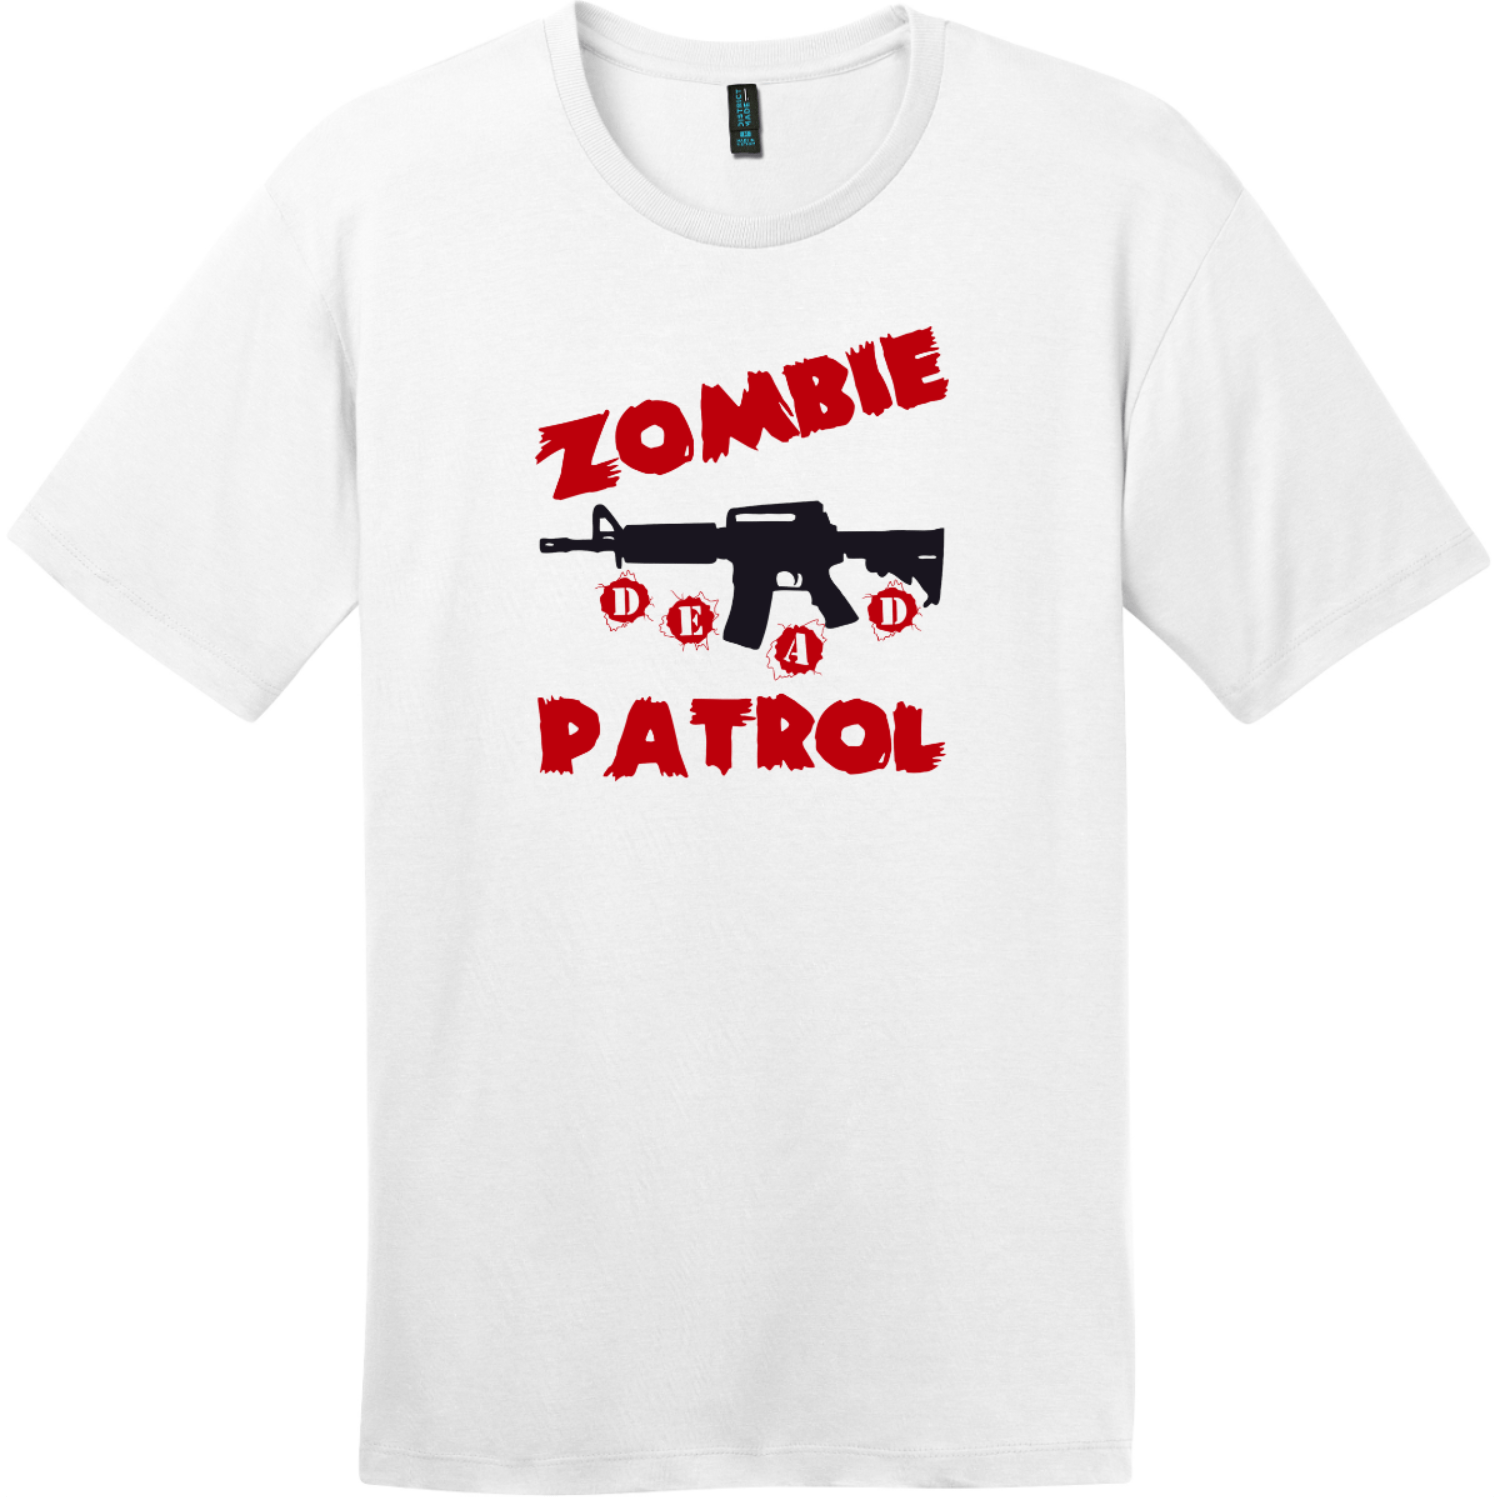 Zombie Patrol T-Shirt Bright White District Perfect Weight Tee DT104